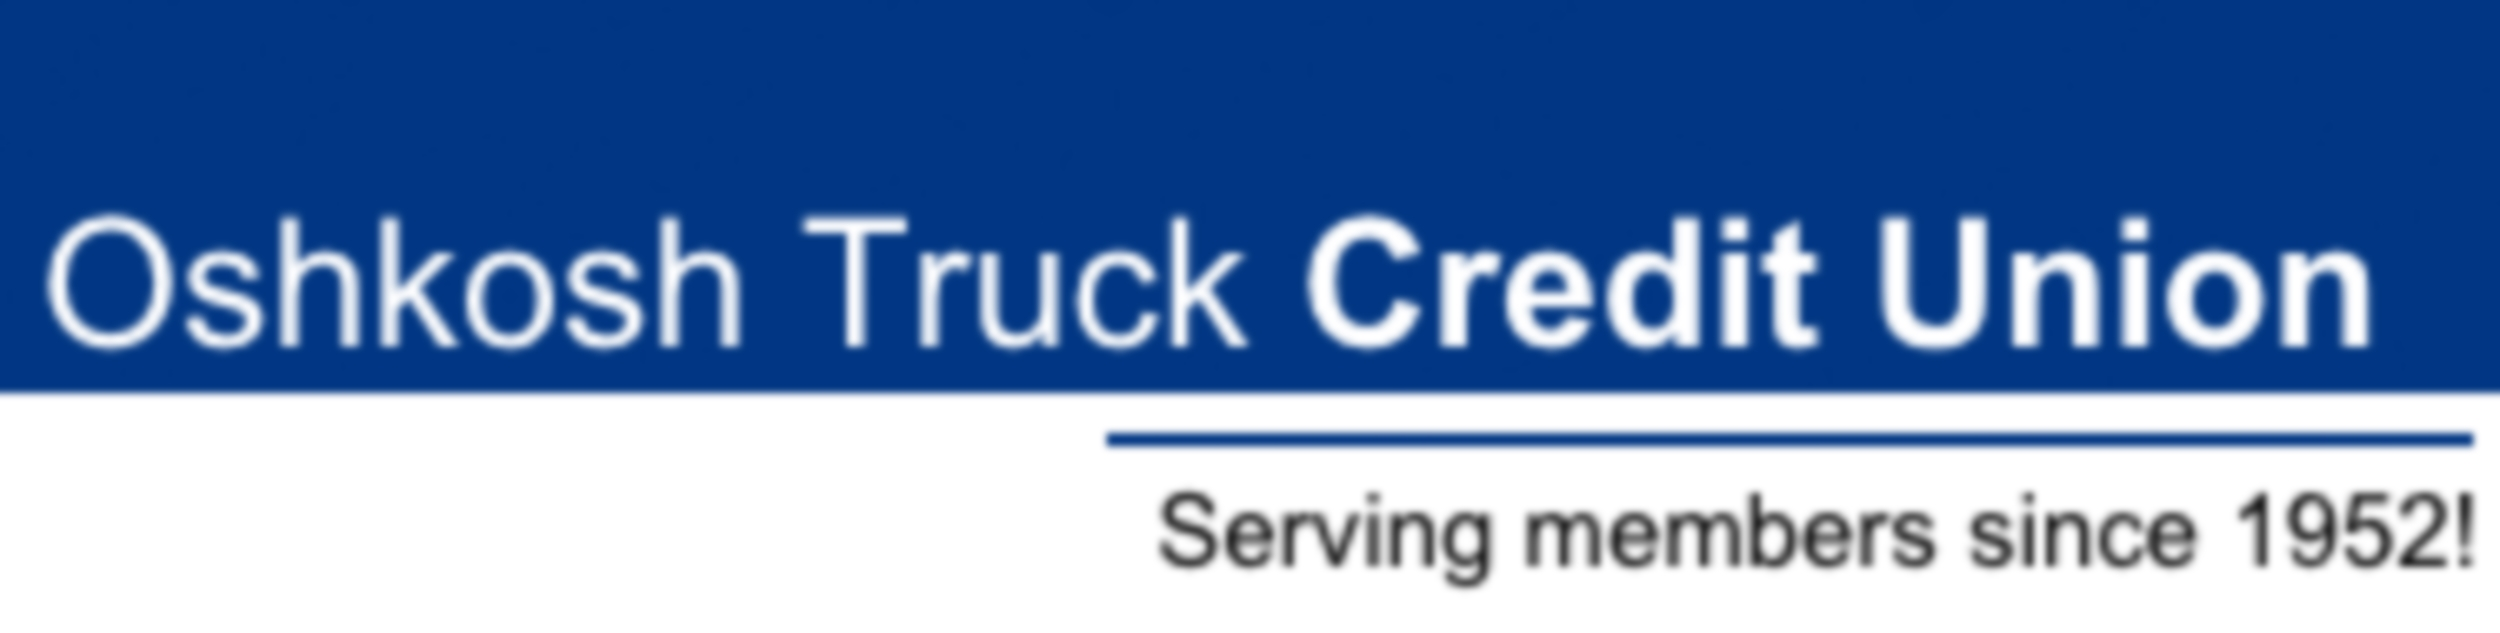 Oshkosh Truck Credit Union logo